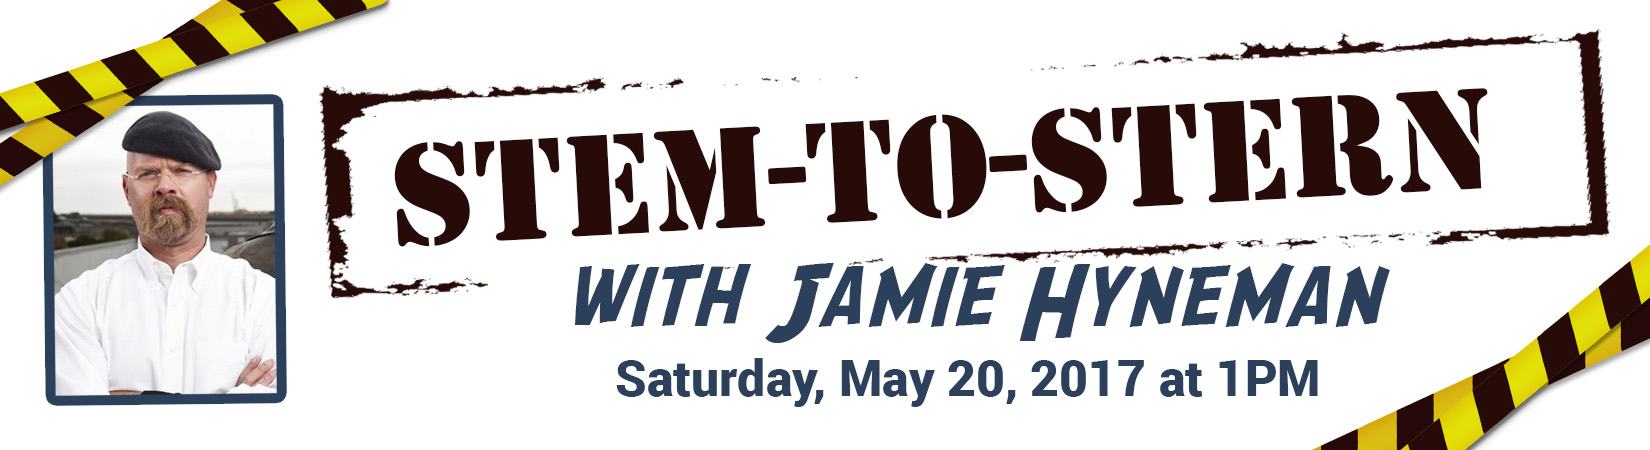 2017-STEM-to-Stern with Jaime Hyneman-Event Banner